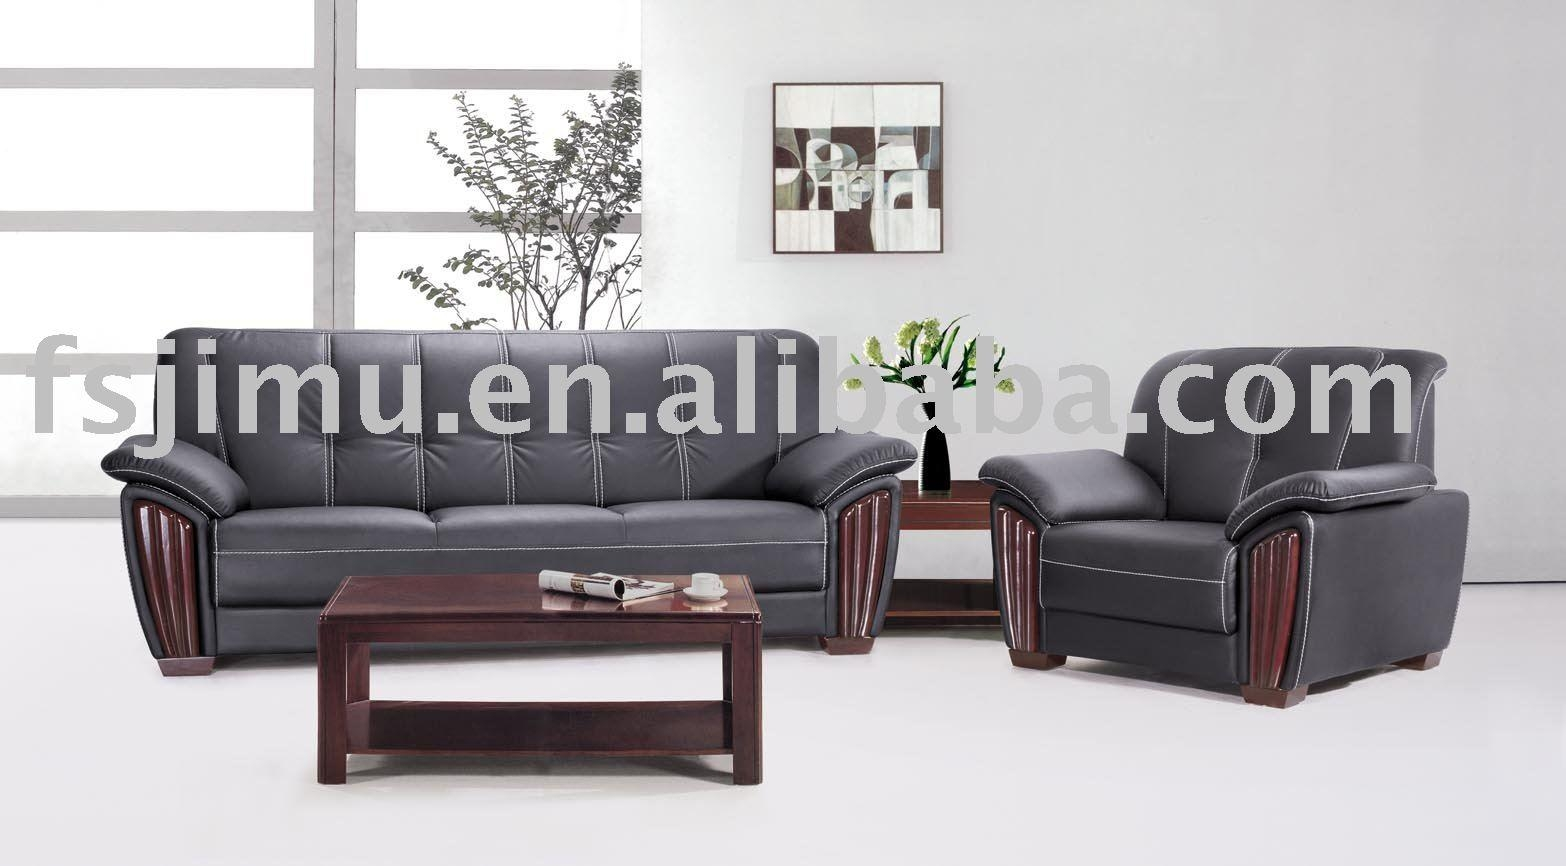 High End Office Sofa, High End Office Sofa Suppliers And Intended For High End Sofa (Image 7 of 20)